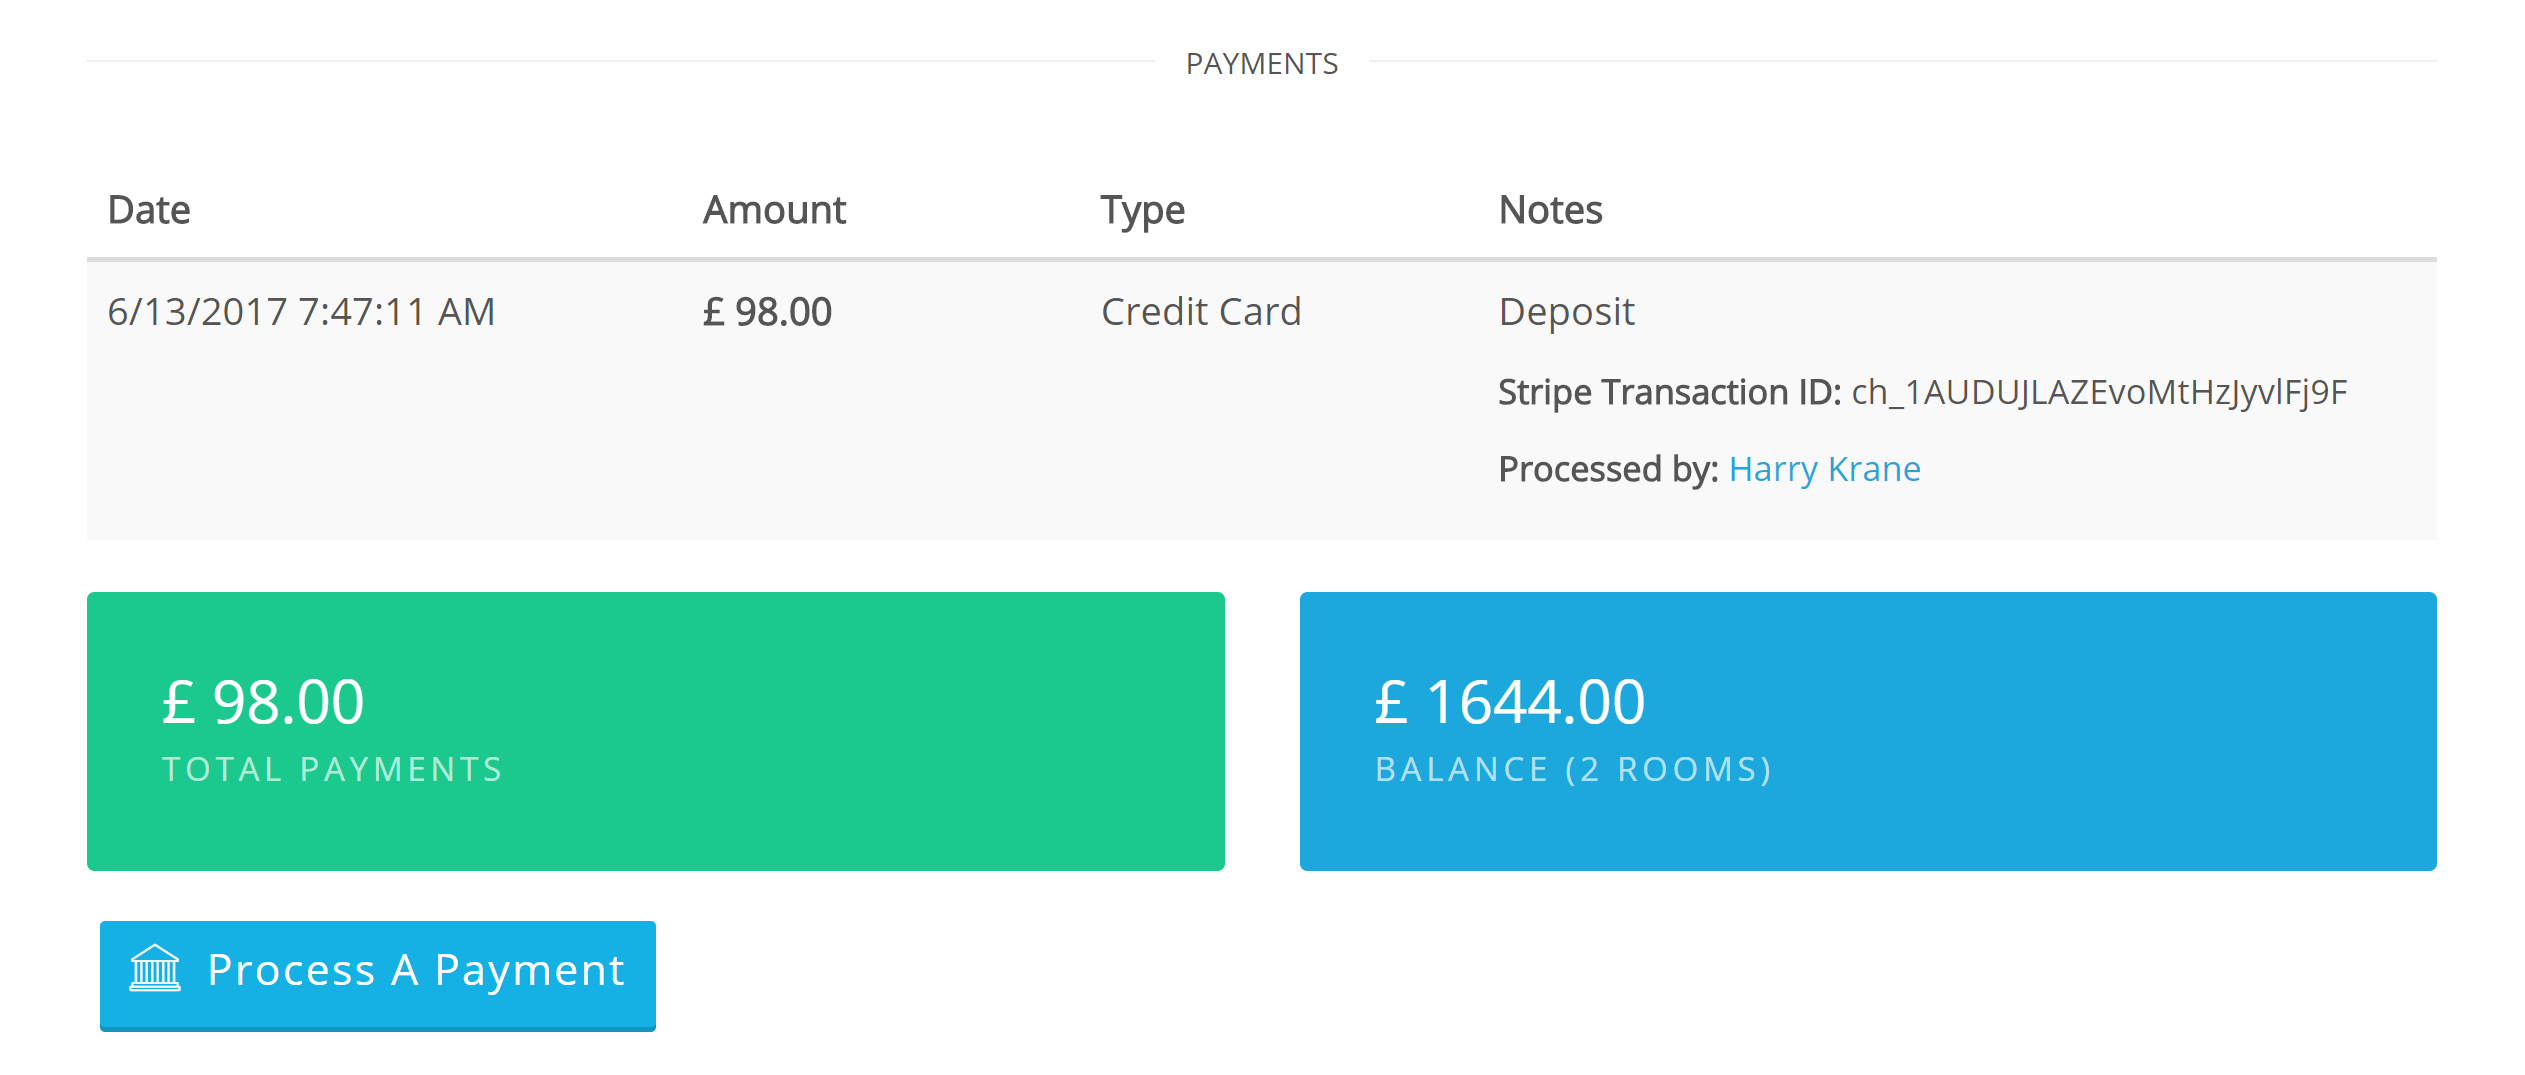 Updates to Payment Processing Front Desk manager to process payments at any point through the lifetime of a reservation. This means you can now accept deposits and partial payments from the time a booking is created, until it's checked out. Bellebnb is a complete property management system for your Hotel. Sign up for free!.